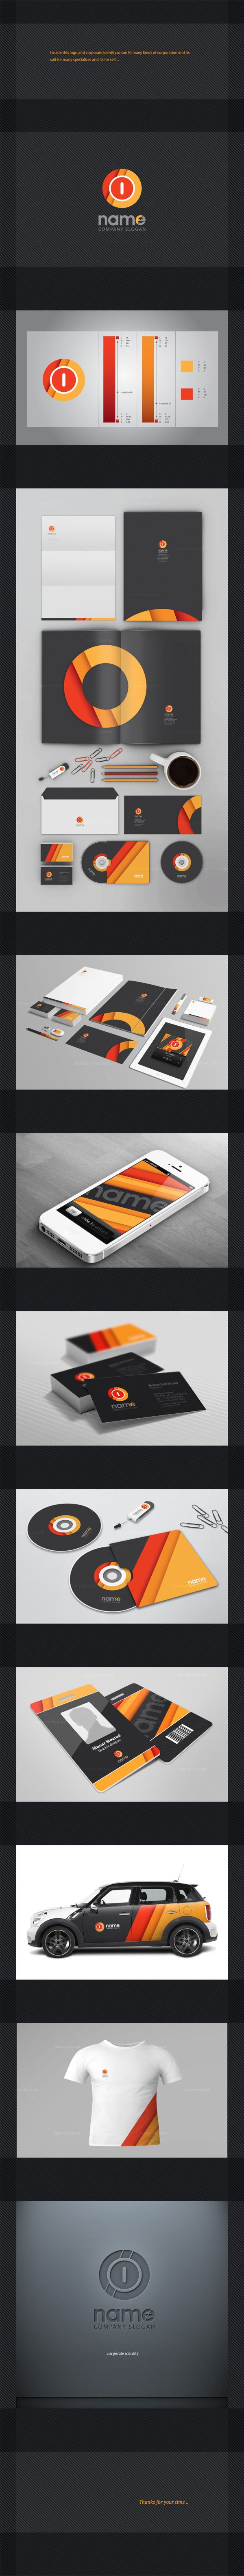 Corporate identity by Manar Mo, via Behance